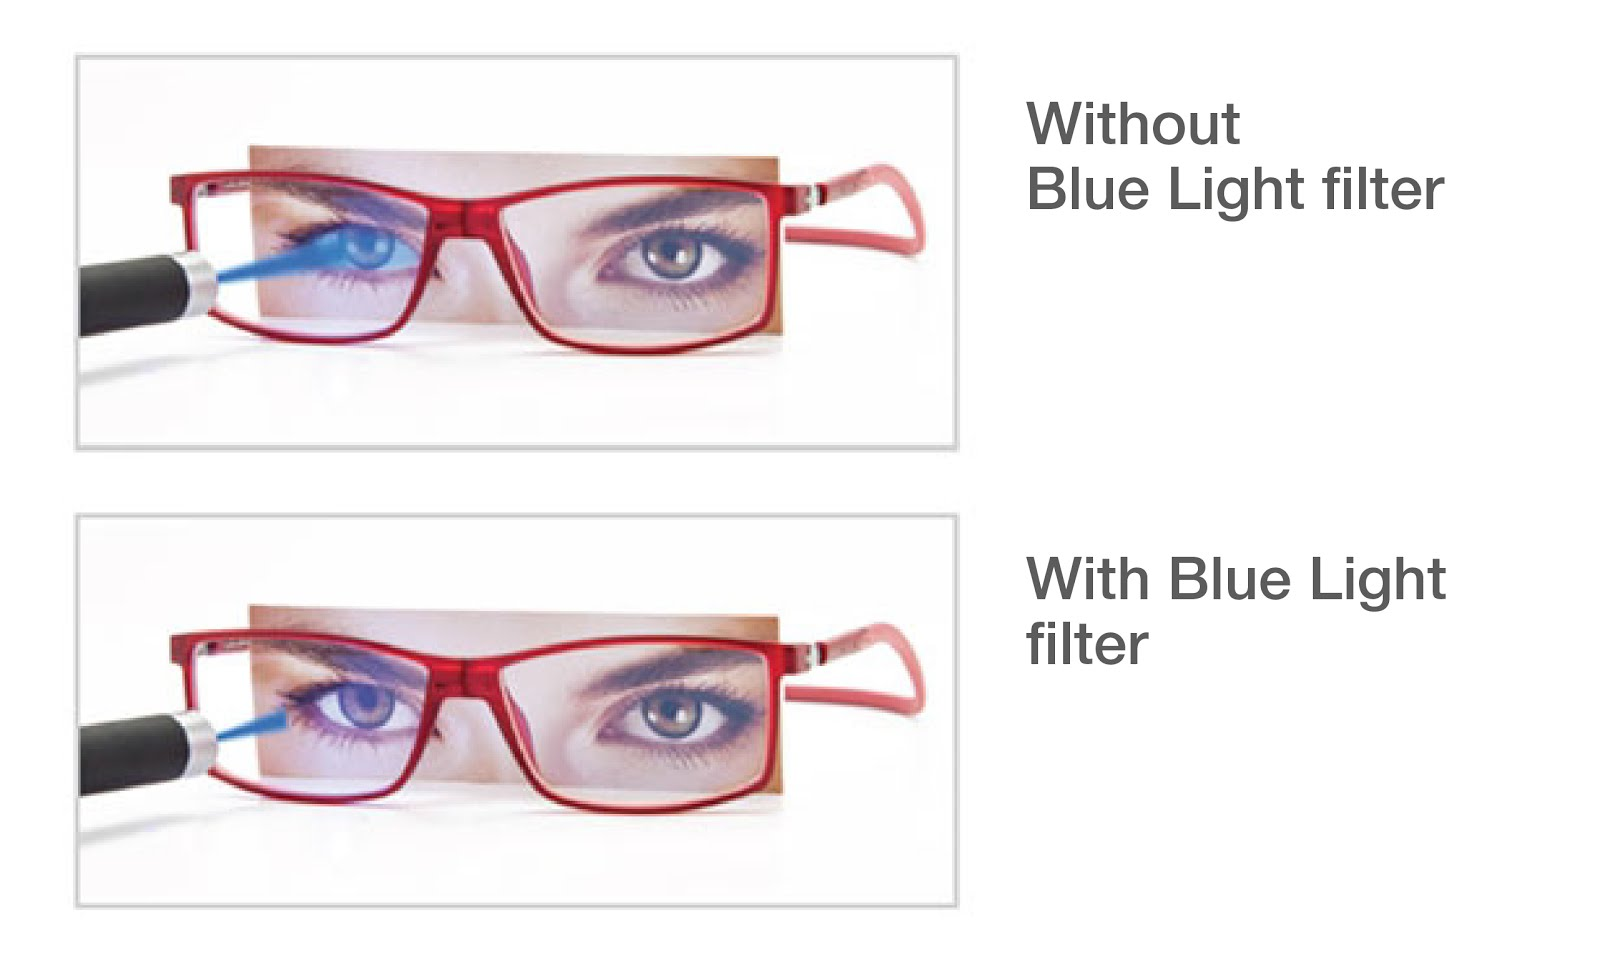 All Thanks To These Latest Blue Light Filter Coatings, The Harmful Portion  Of Blue Light Is Cut While Allowing The Good Portion Of Blue Light To Pass  ...